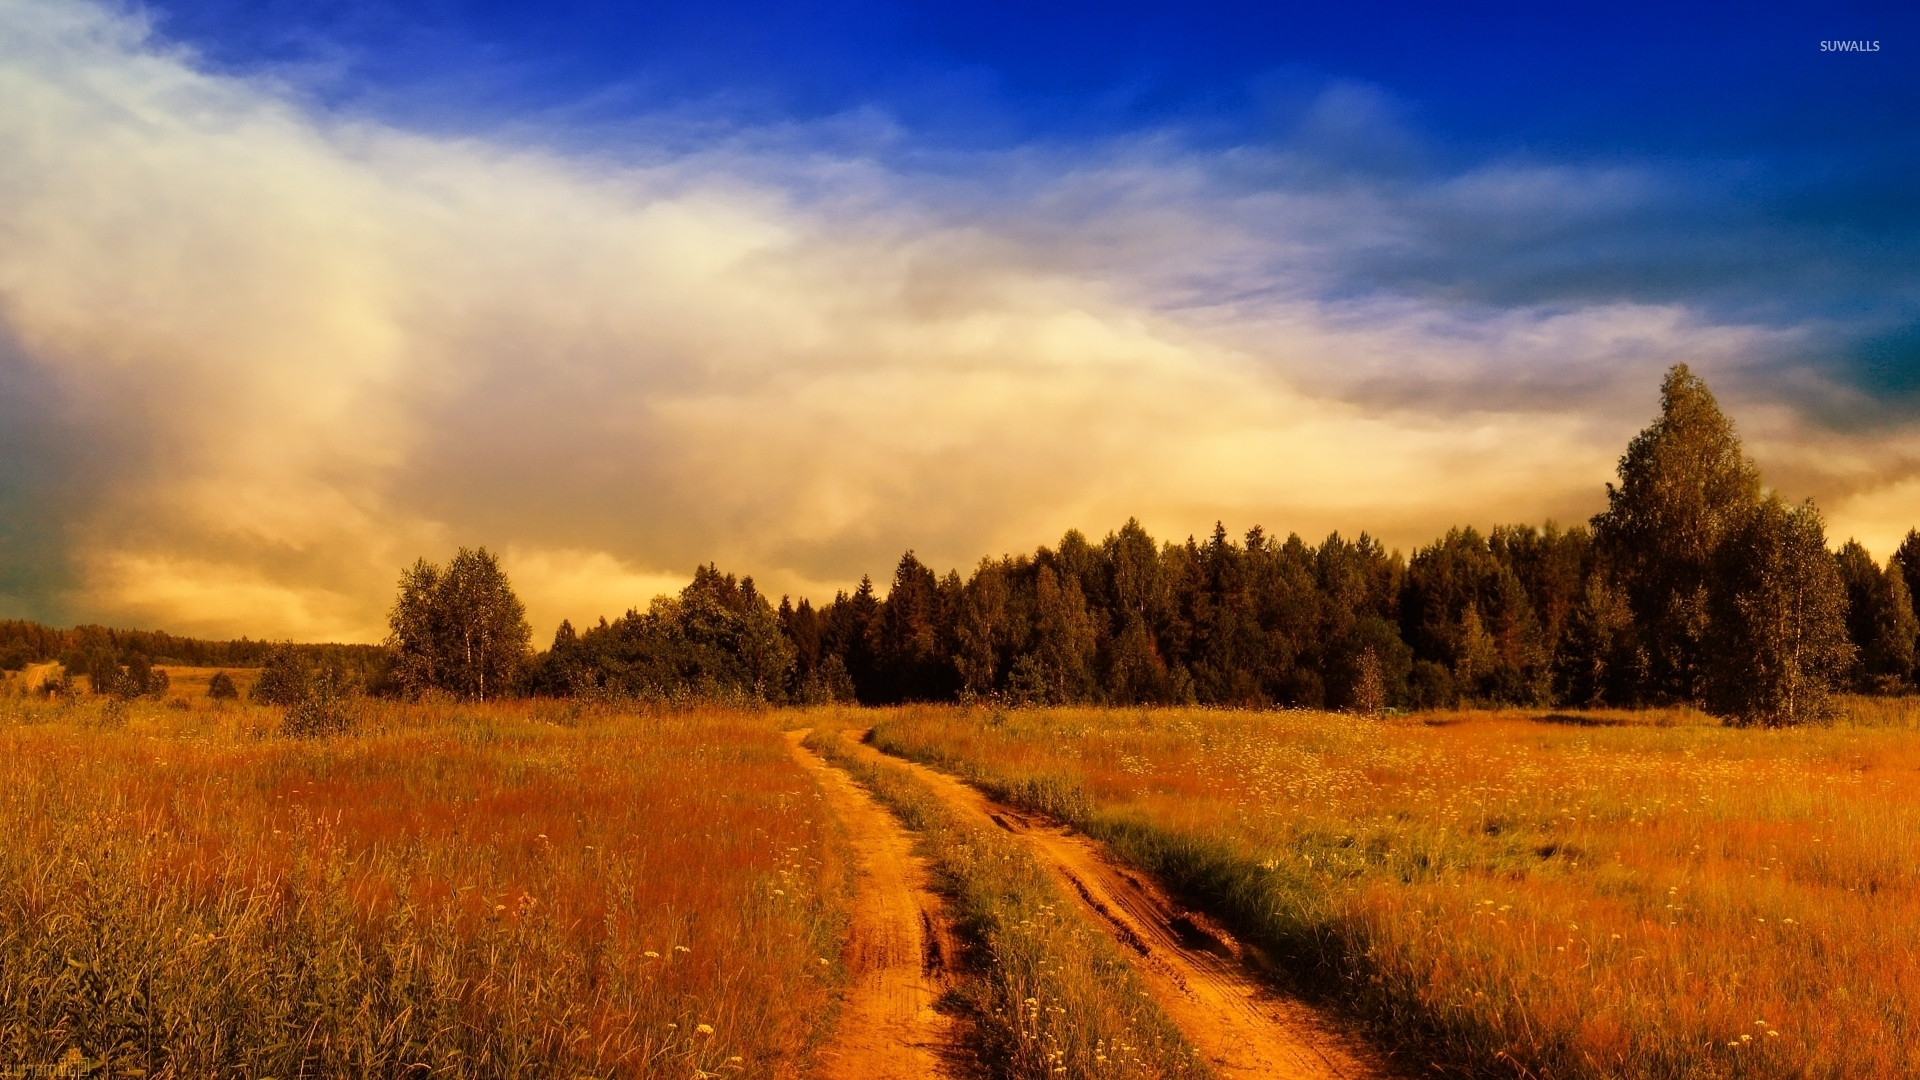 1920x1080 Wallpaper: Path On The Rusty Field Towards The Forest Wallpaper